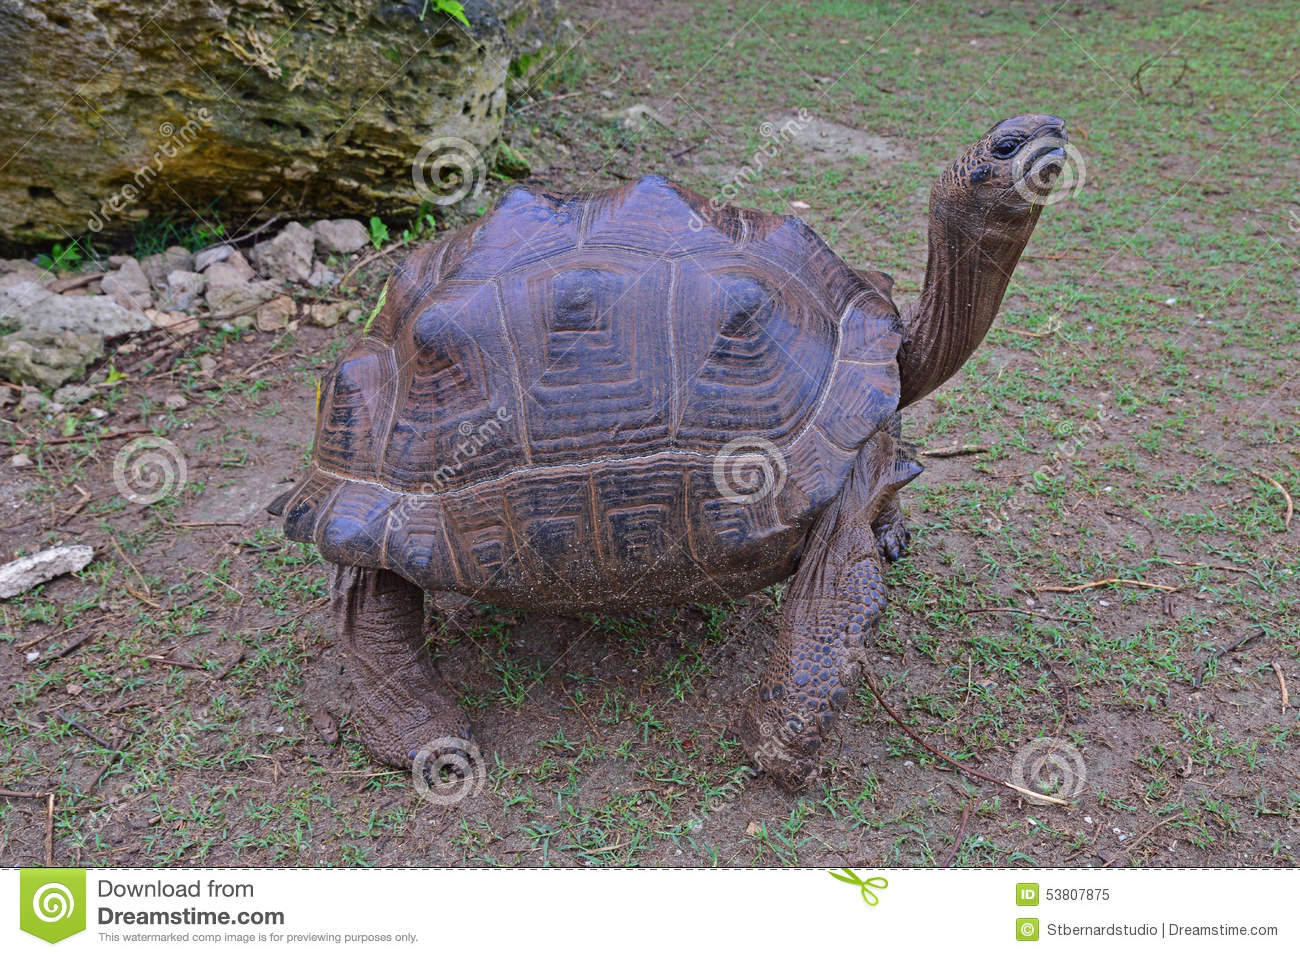 Aldabra Giant Tortoise clipart #4, Download drawings